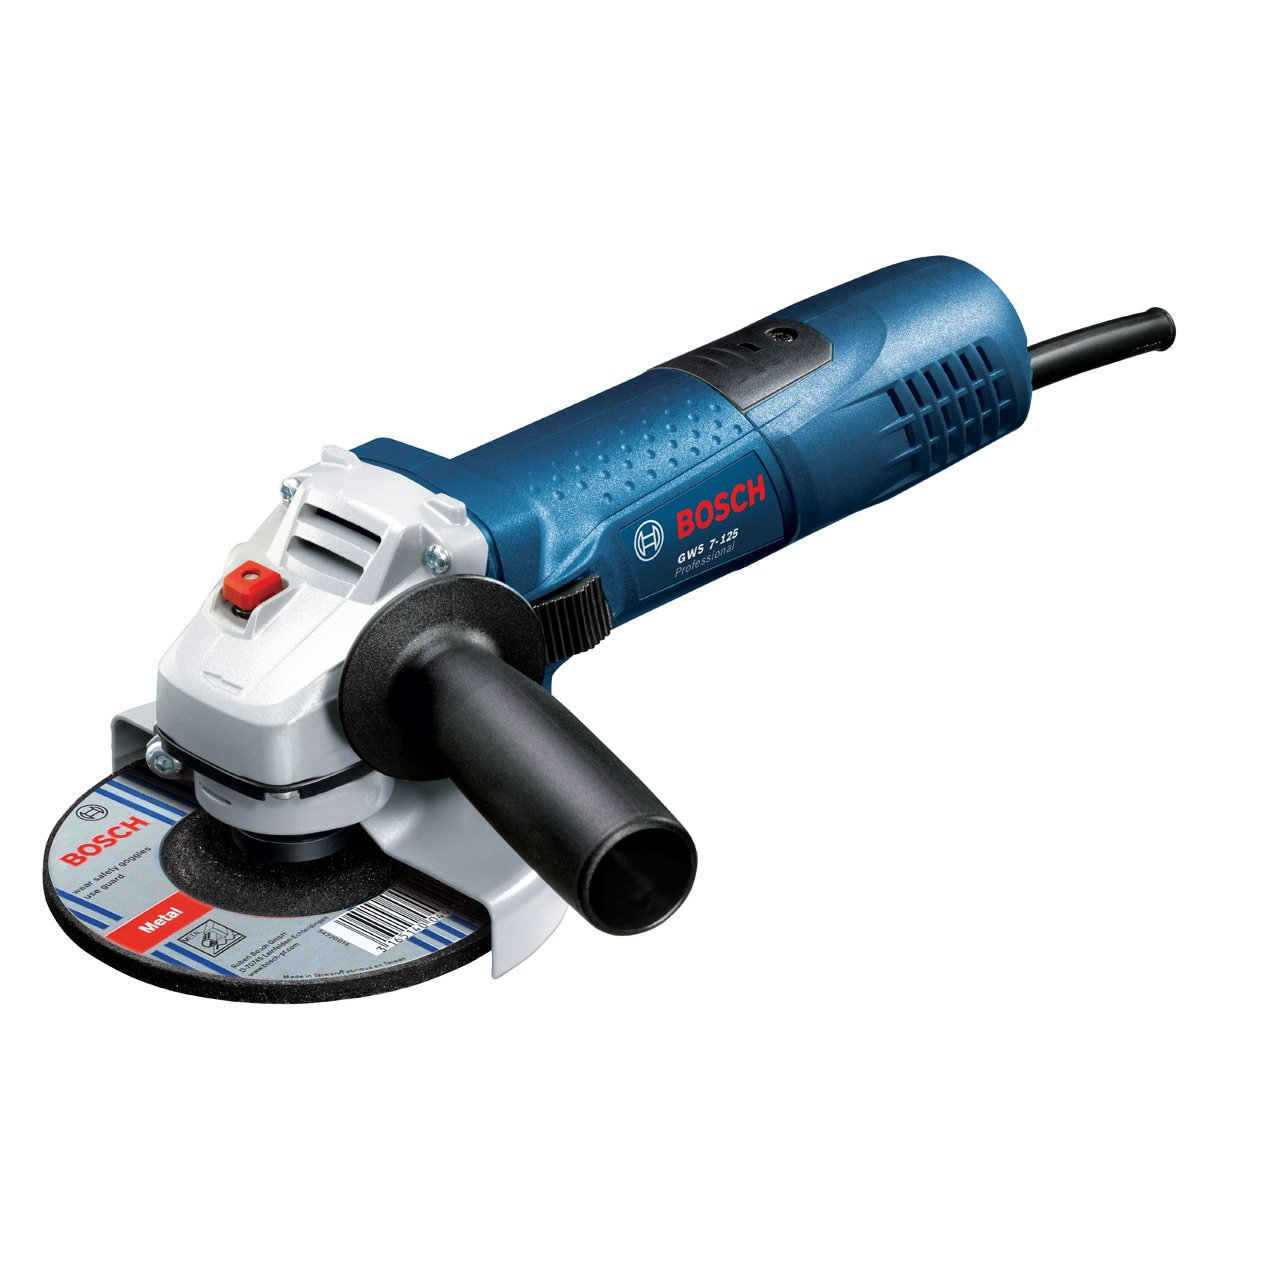 Bosch Professional 0601388102 Amoladora, 720 W, 240 V product image